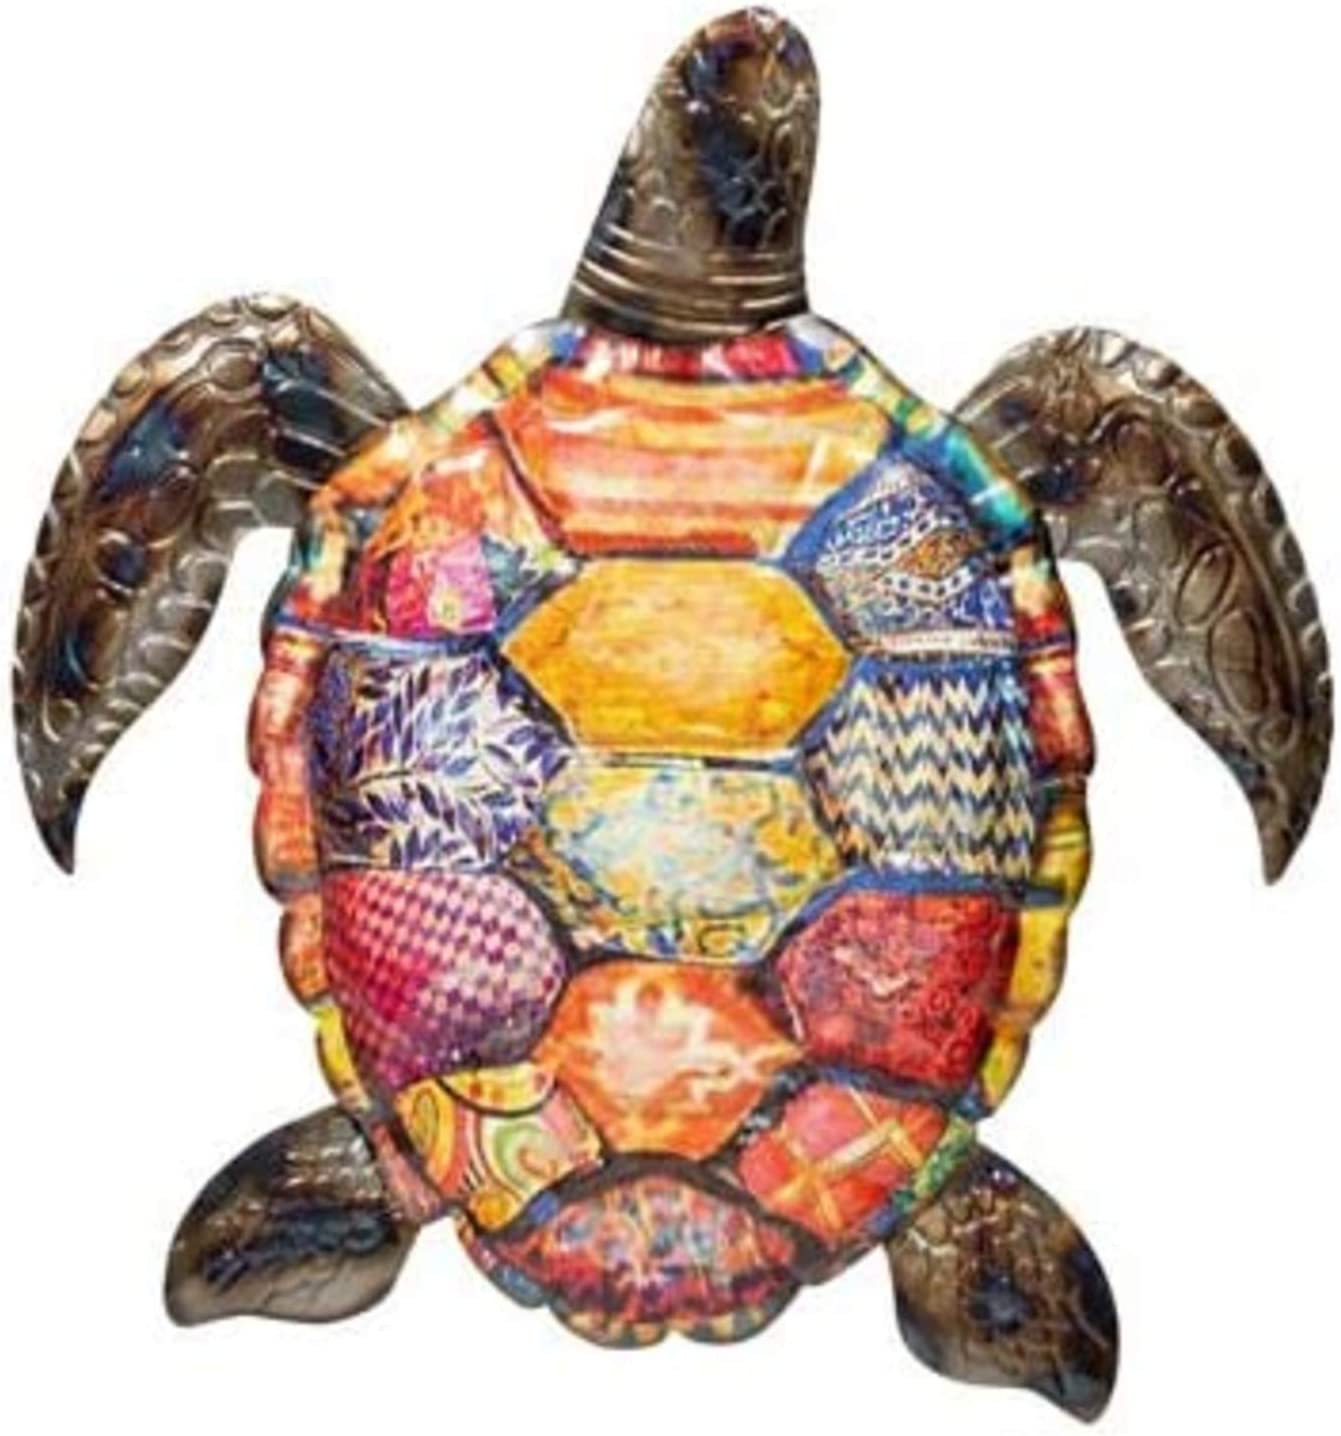 Metal wall Art Sea Turtle Indoor Outdoor Tropical Wall Sculpture Decor Metal Beach Turtle Art (11 in x 11 in)